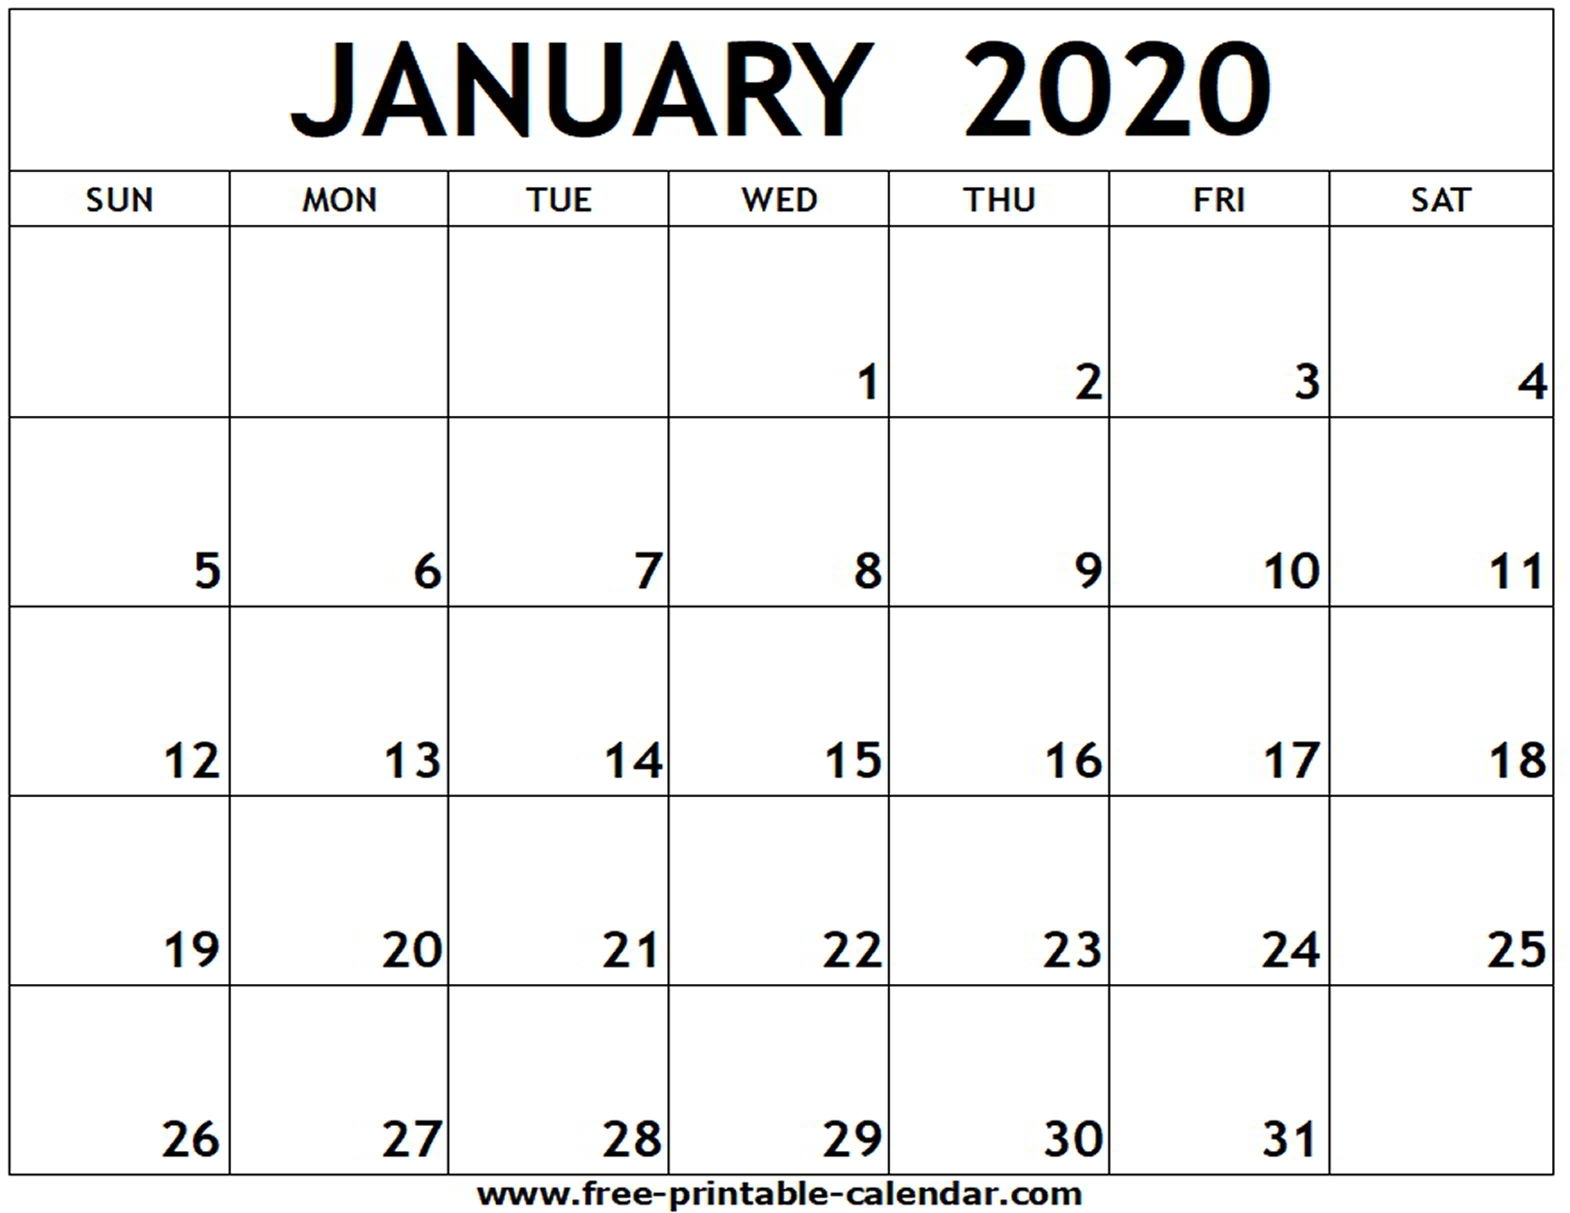 January 2020 Printable Calendar - Free-Printable-Calendar intended for Free Printable Calendar With Lines